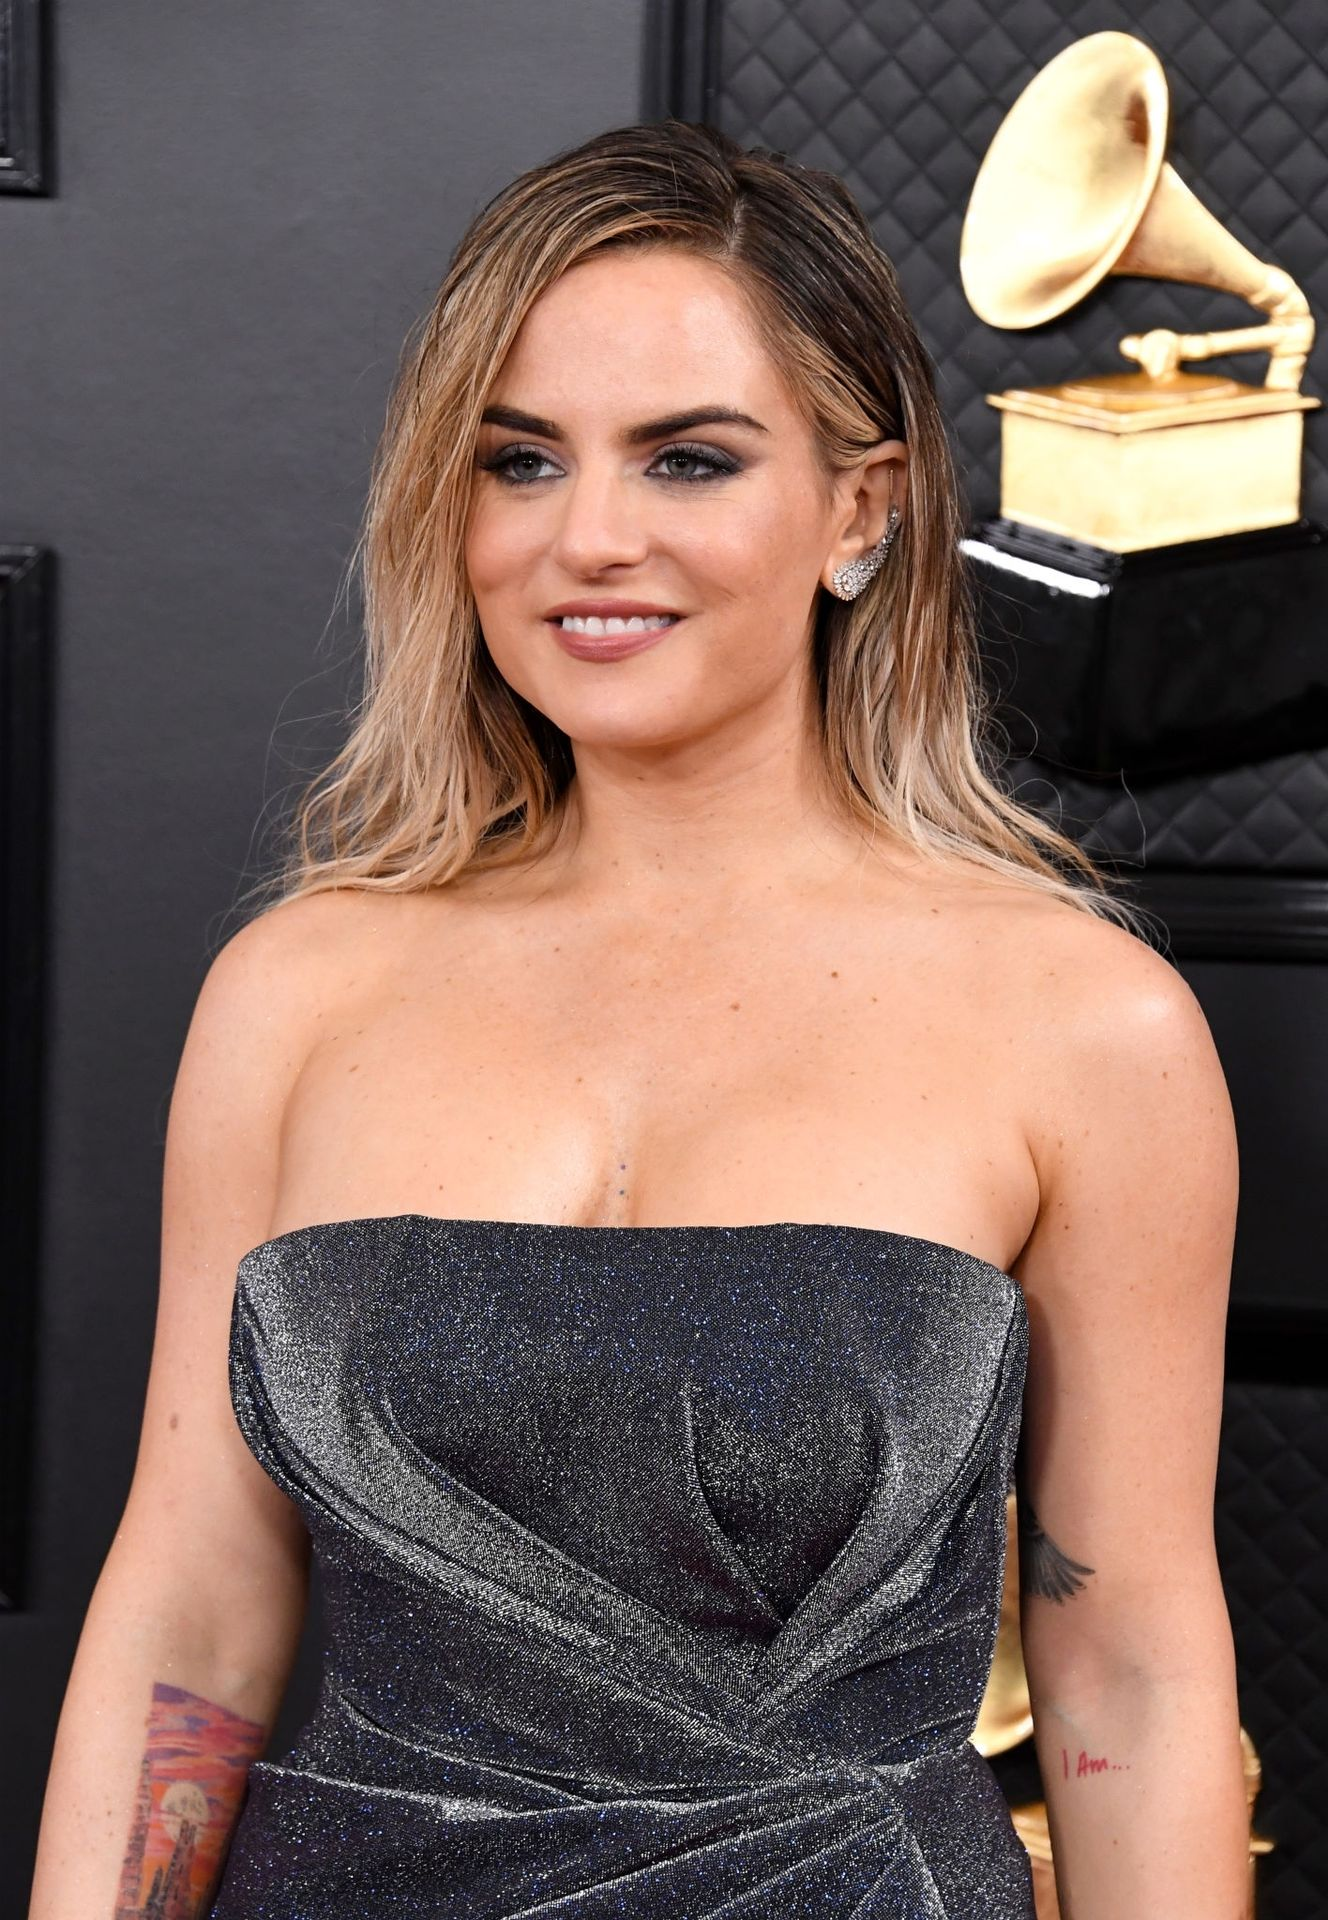 Jojo Shows Her Legs And Cleavage At The 62nd Annual Grammy Awards 0003